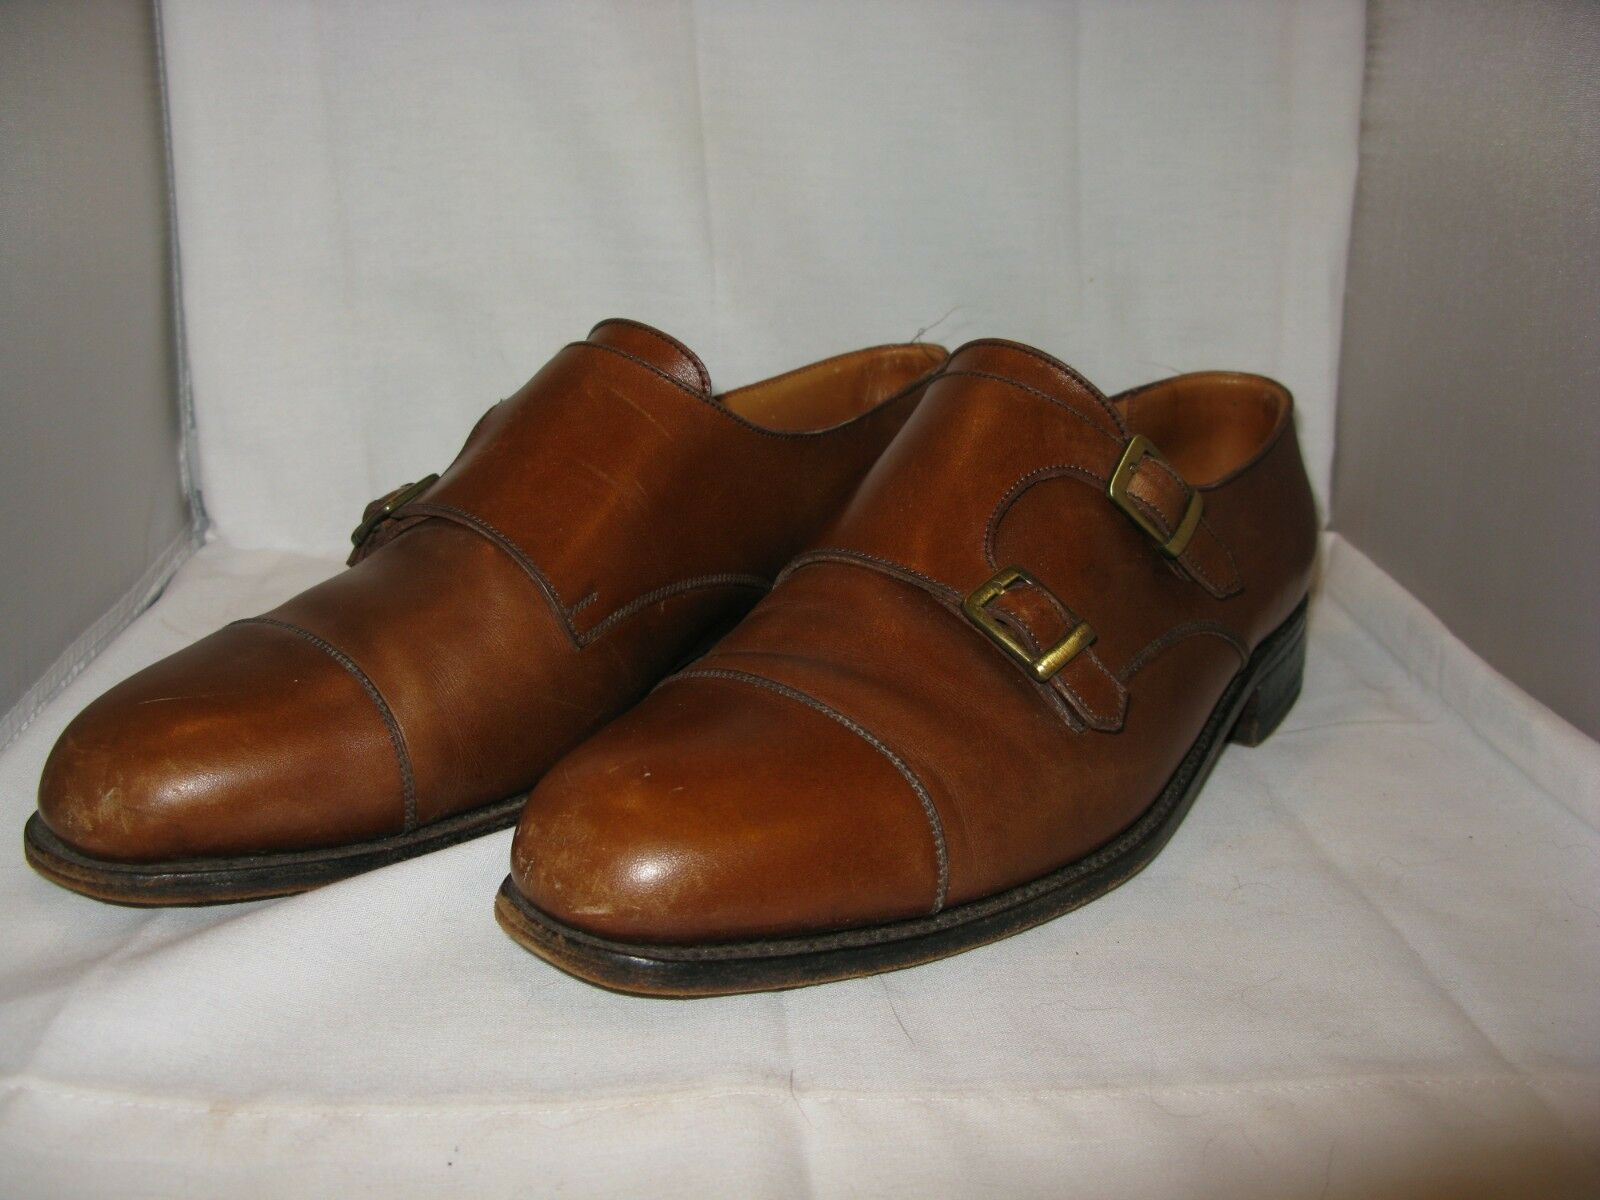 J.M.WESTON BROWN LEATHER DOUBLE BUCKLE DRESS SHOES 8 1/2 D